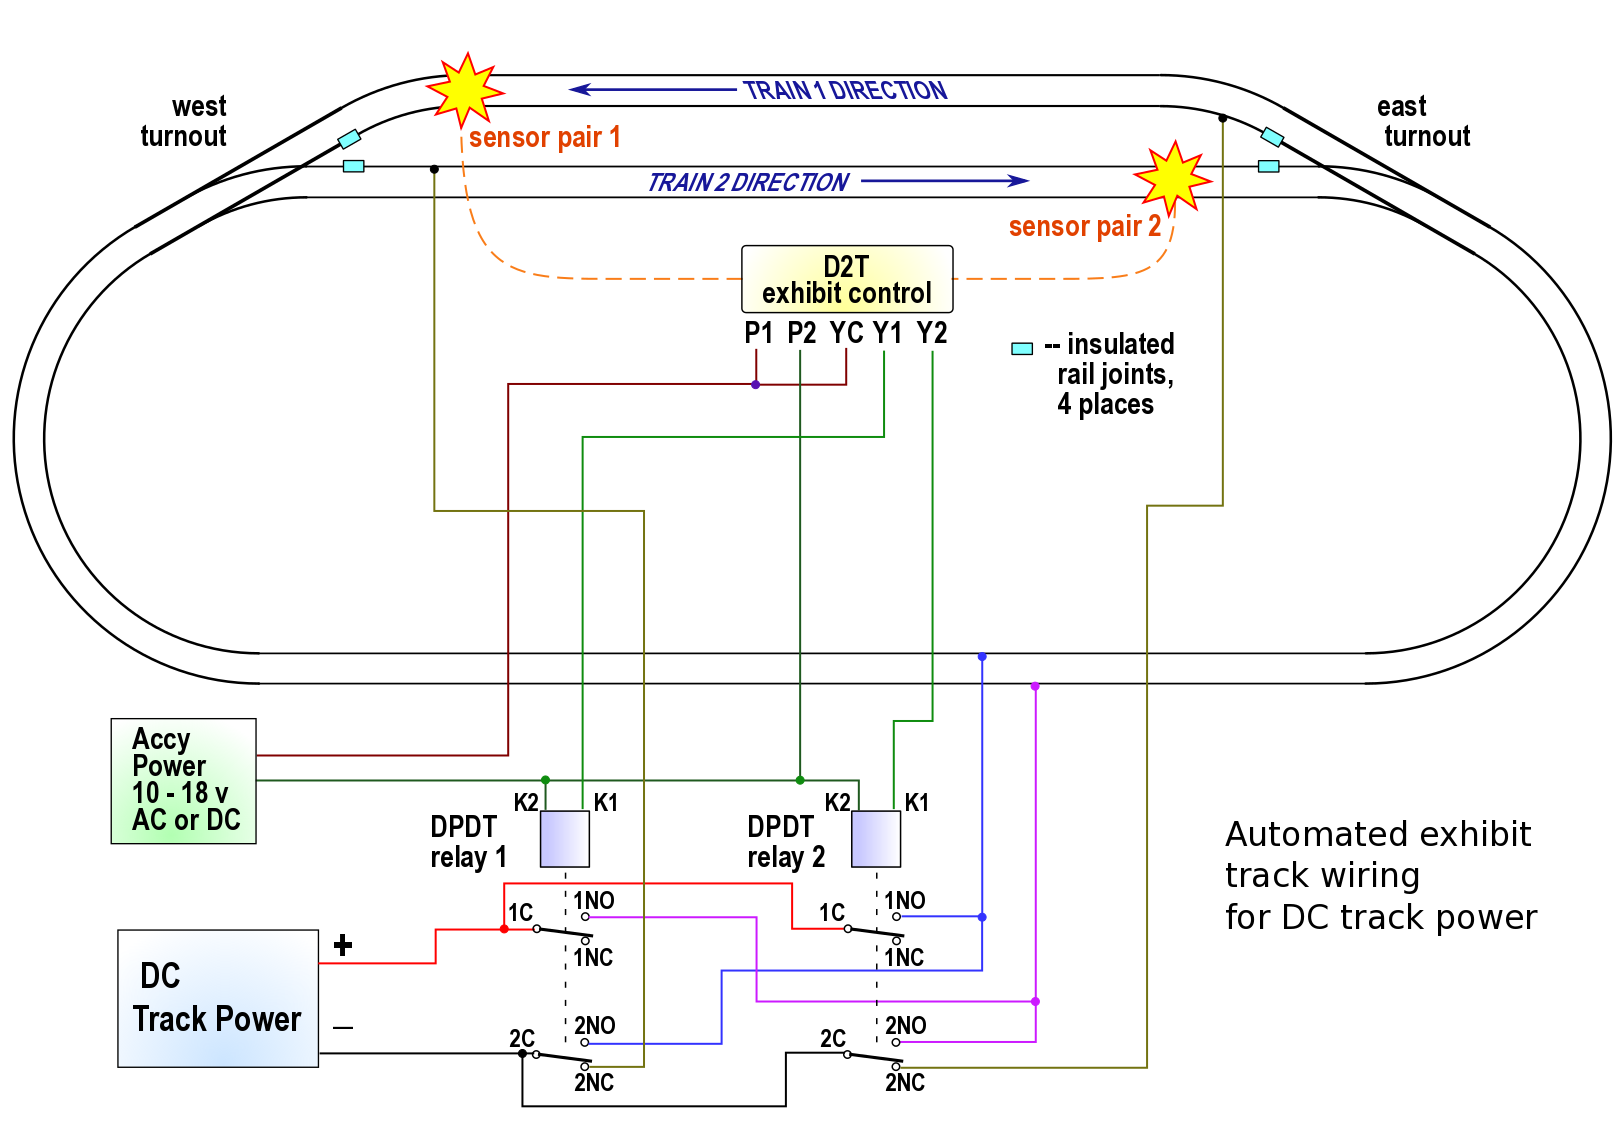 dpdt switch wiring diagram for wye [ 1620 x 1140 Pixel ]